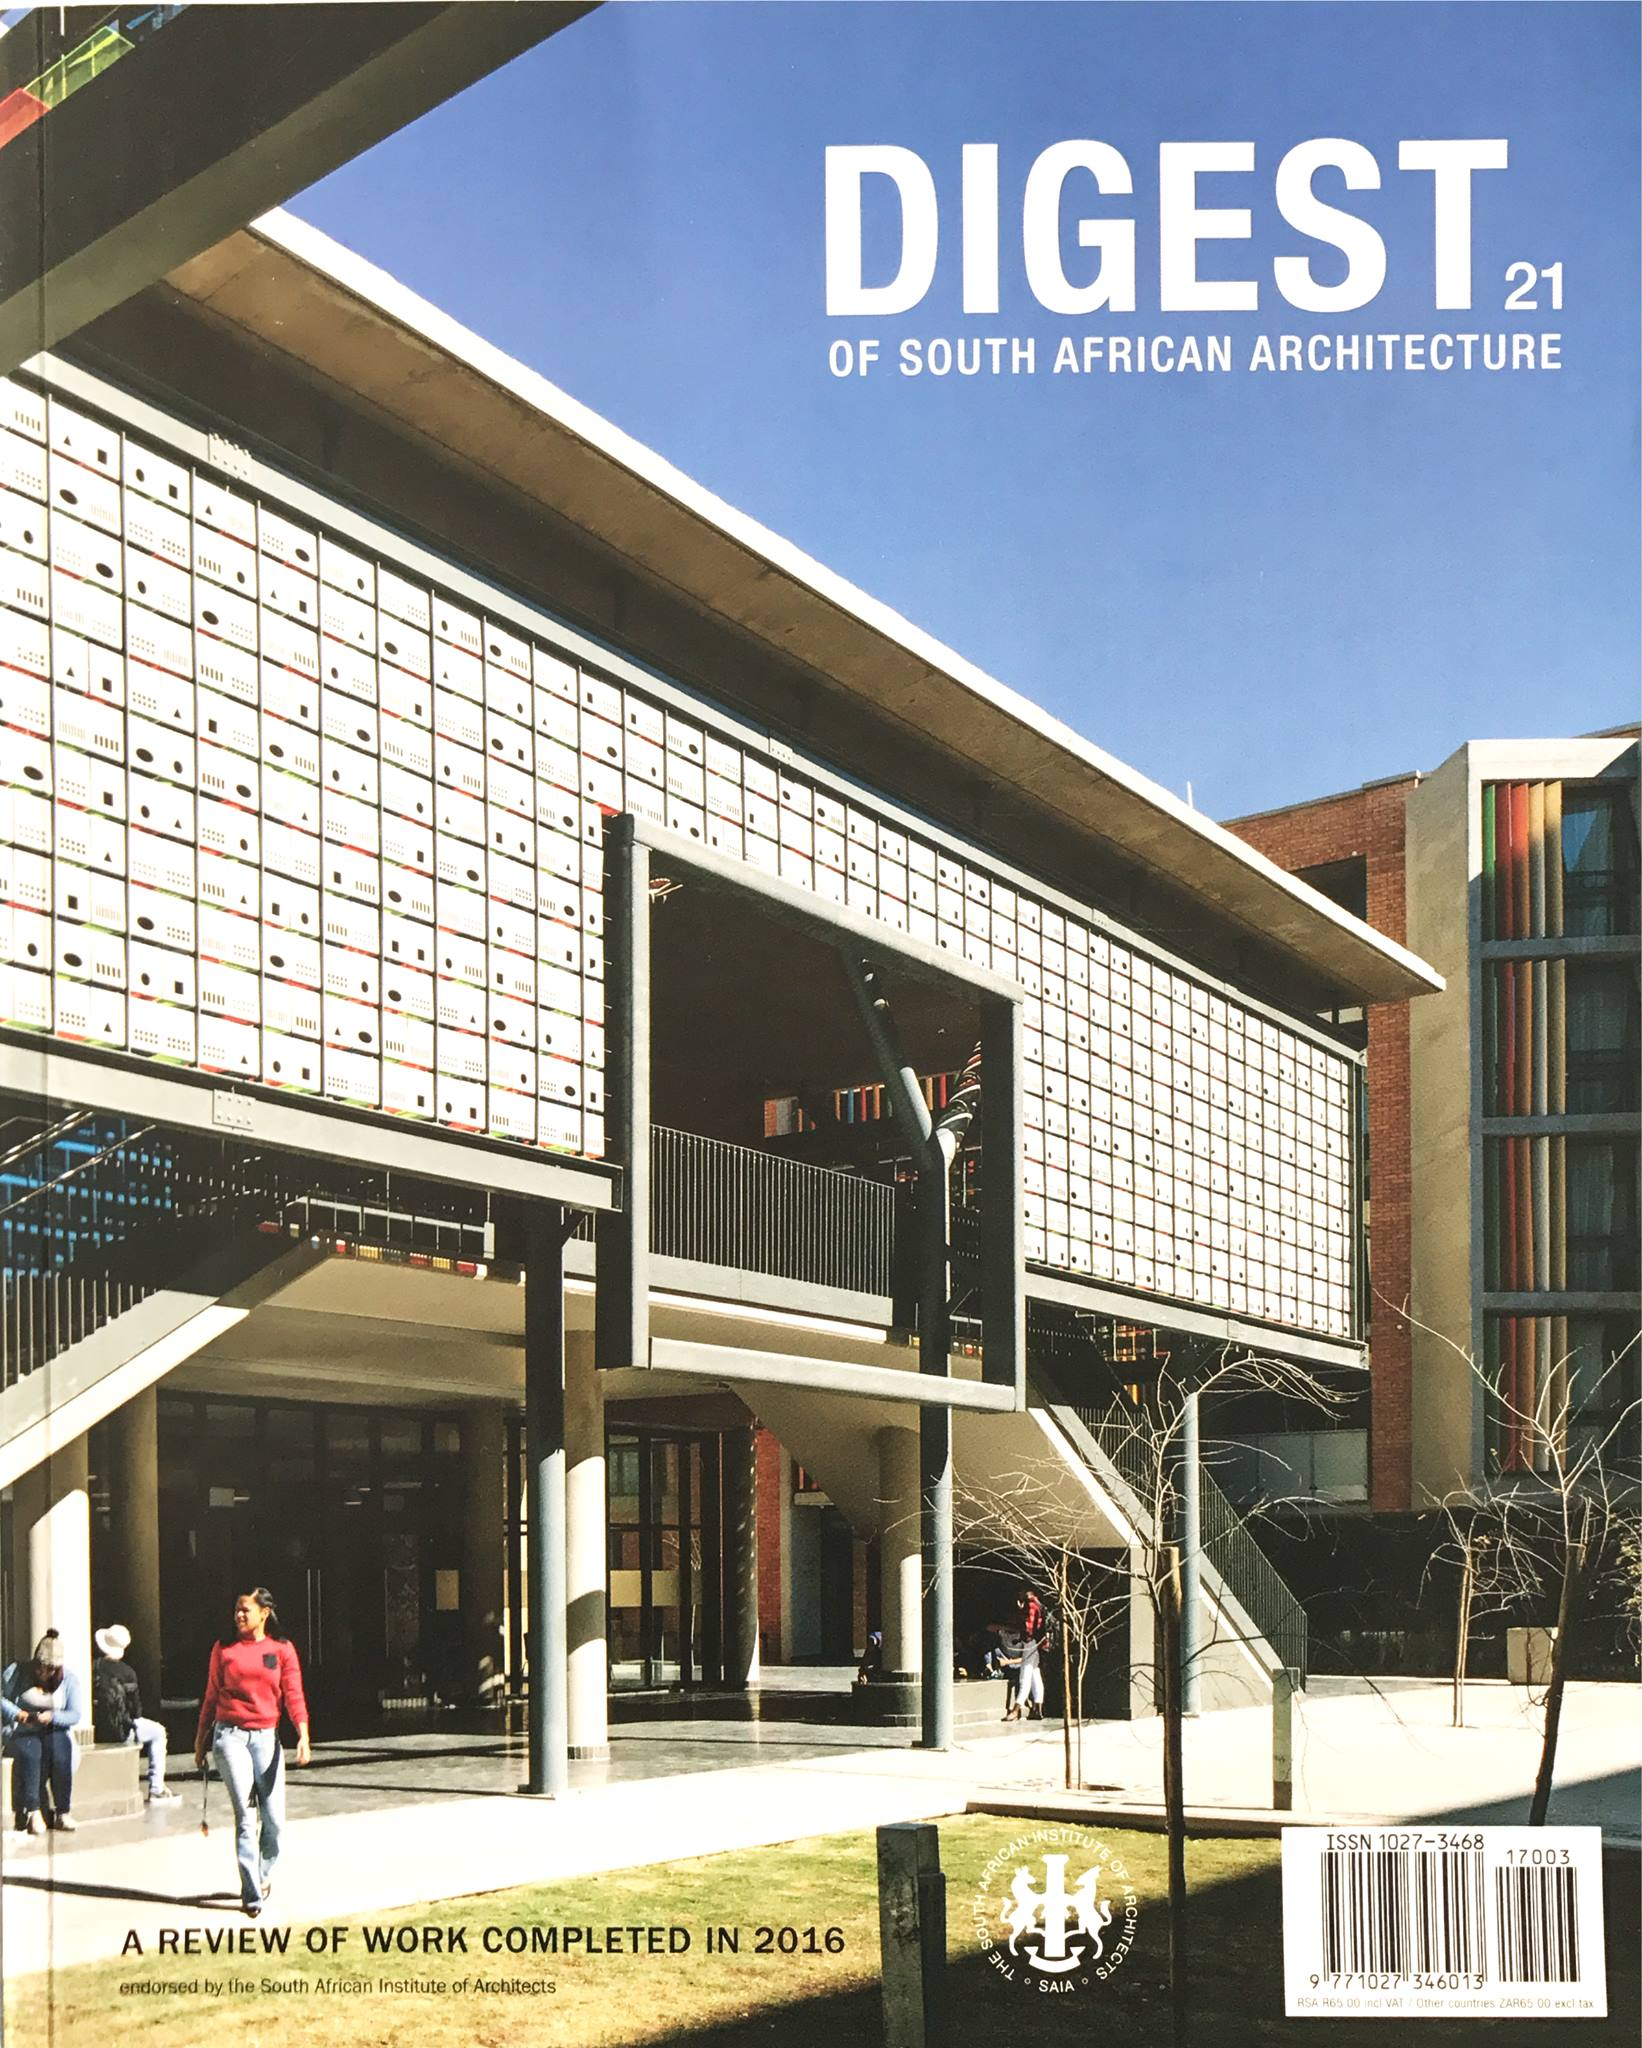 DIGEST OF SOUTH AFRICAN ARCHITECTURE